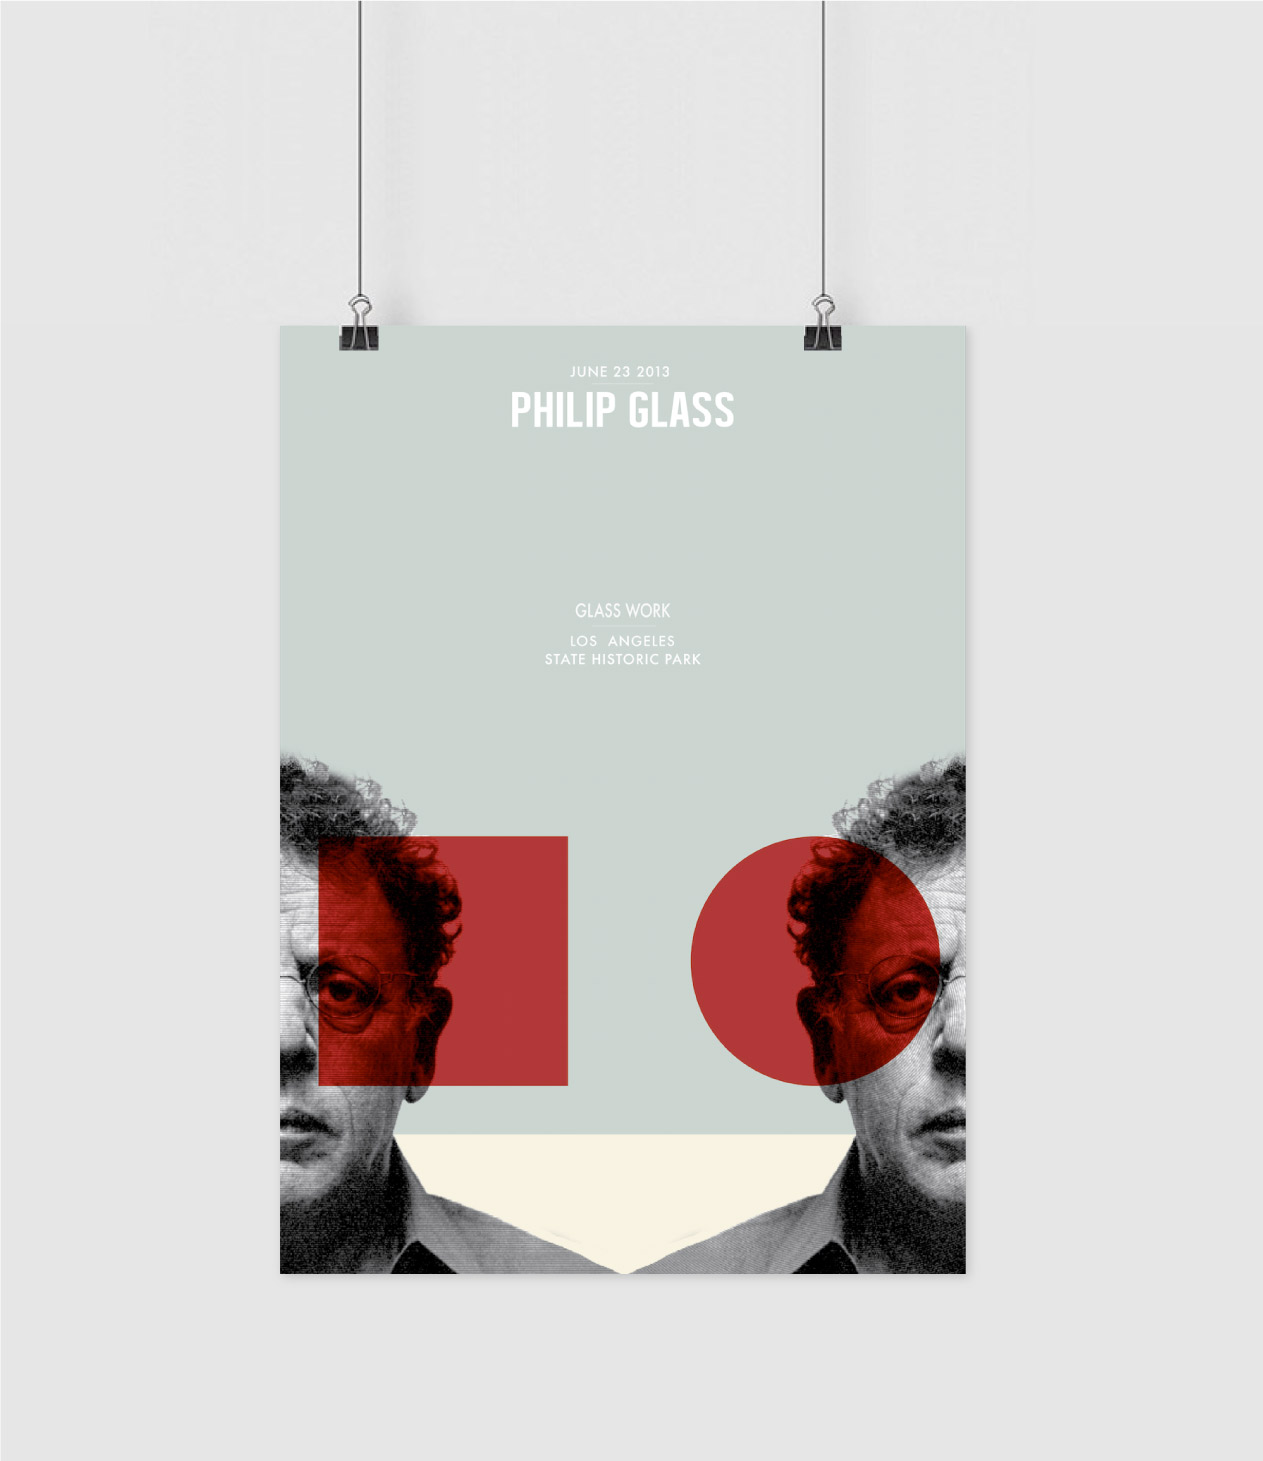 Philip Glass poster design